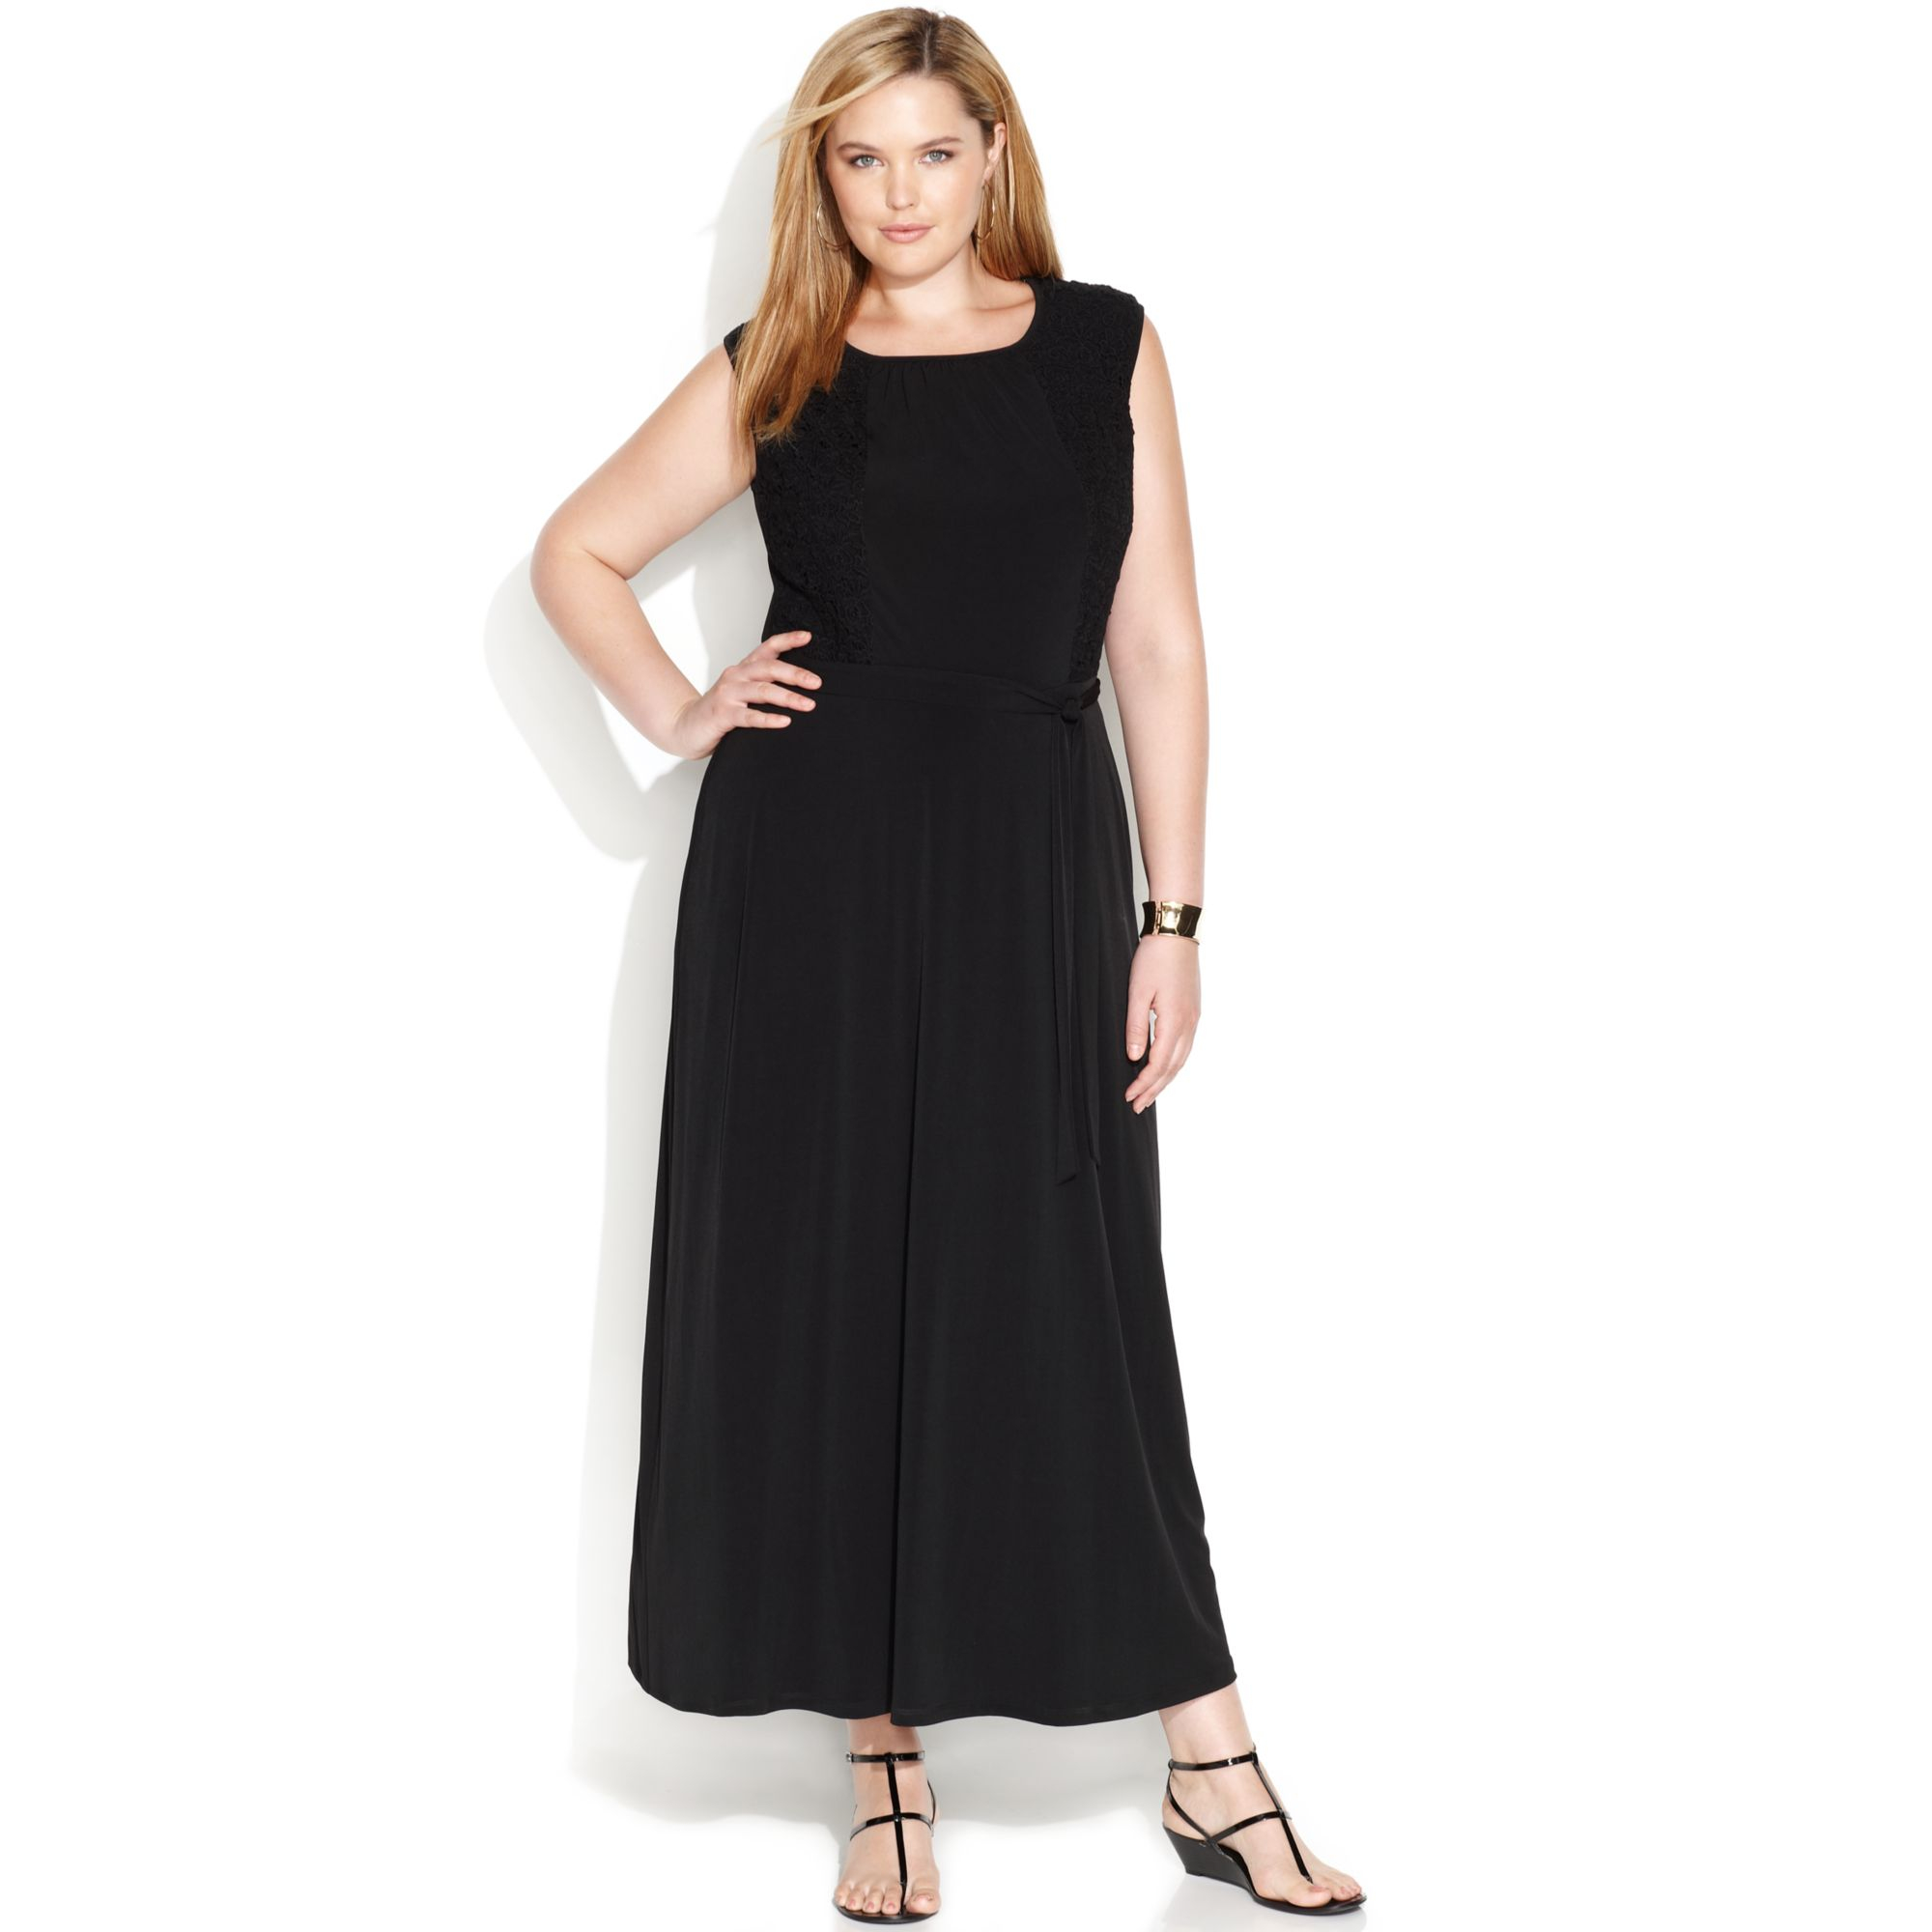 plus size clothes john lewis